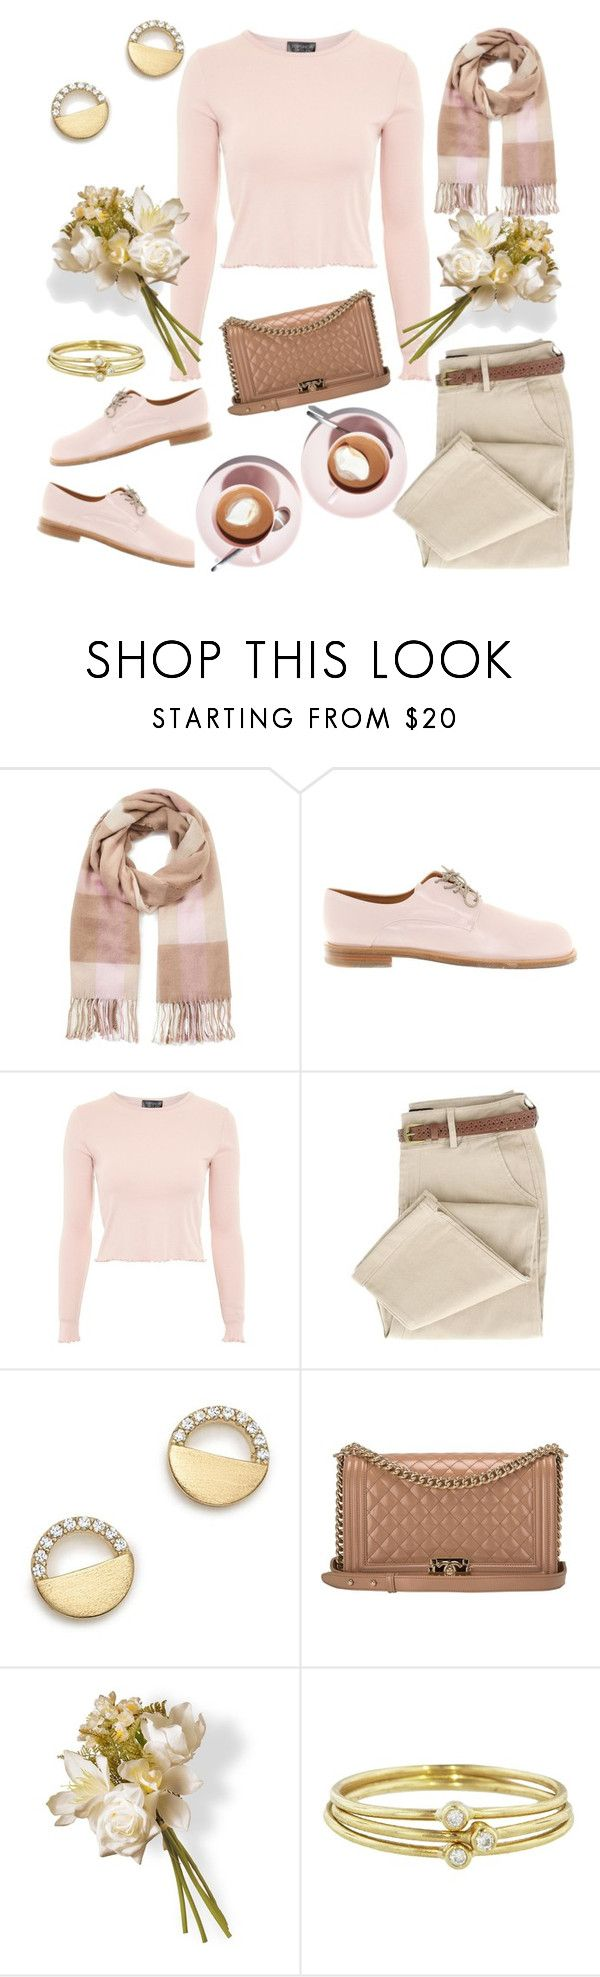 """""""Untitled"""" by valente-i ❤ liked on Polyvore featuring Miss Selfridge, Jil Sander, Topshop, Bloomingdale's, Chanel, National Tree Company, Jennifer Meyer Jewelry and winterscarf"""